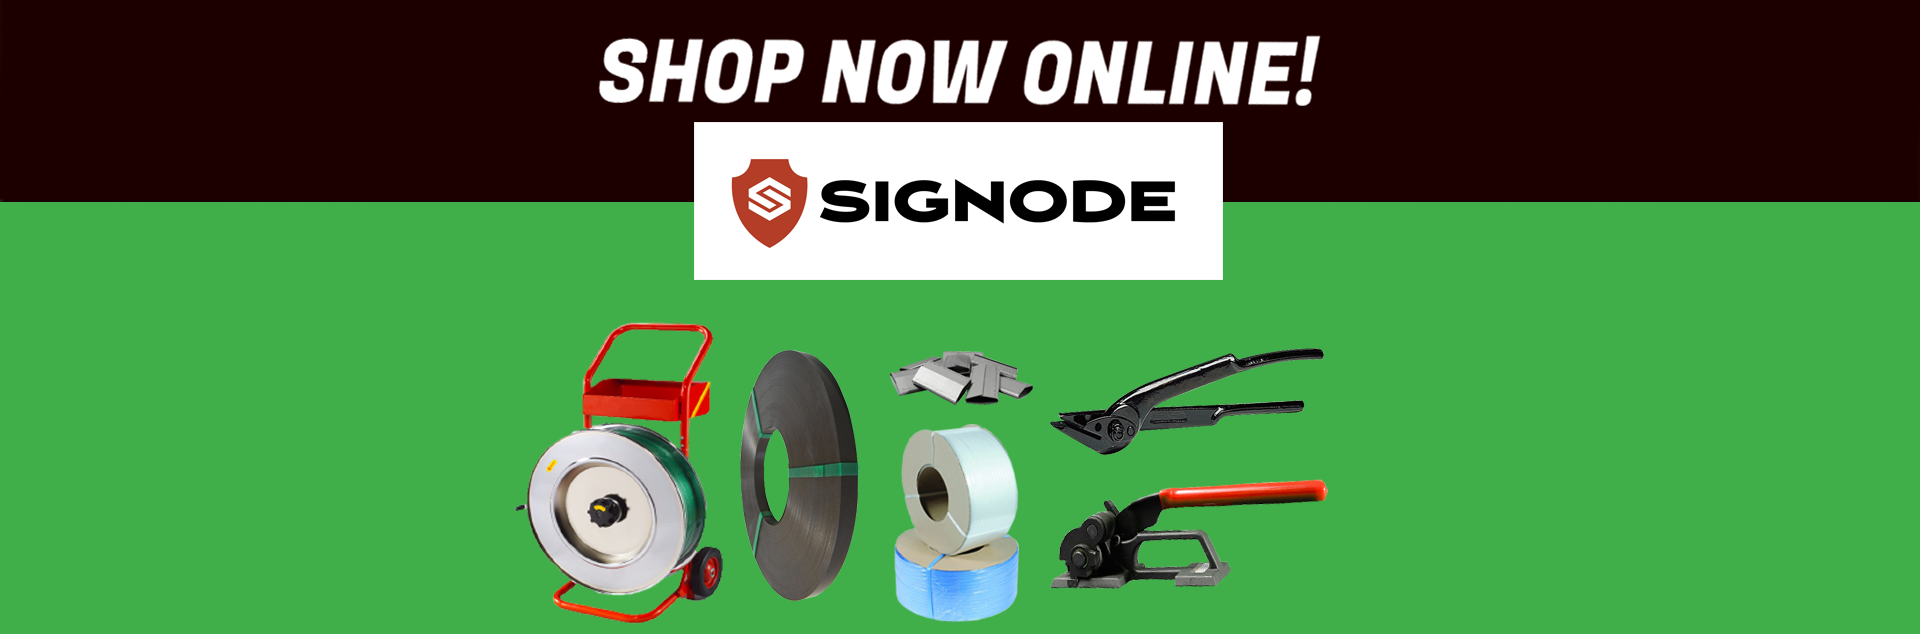 Signode Direct - Shop now online